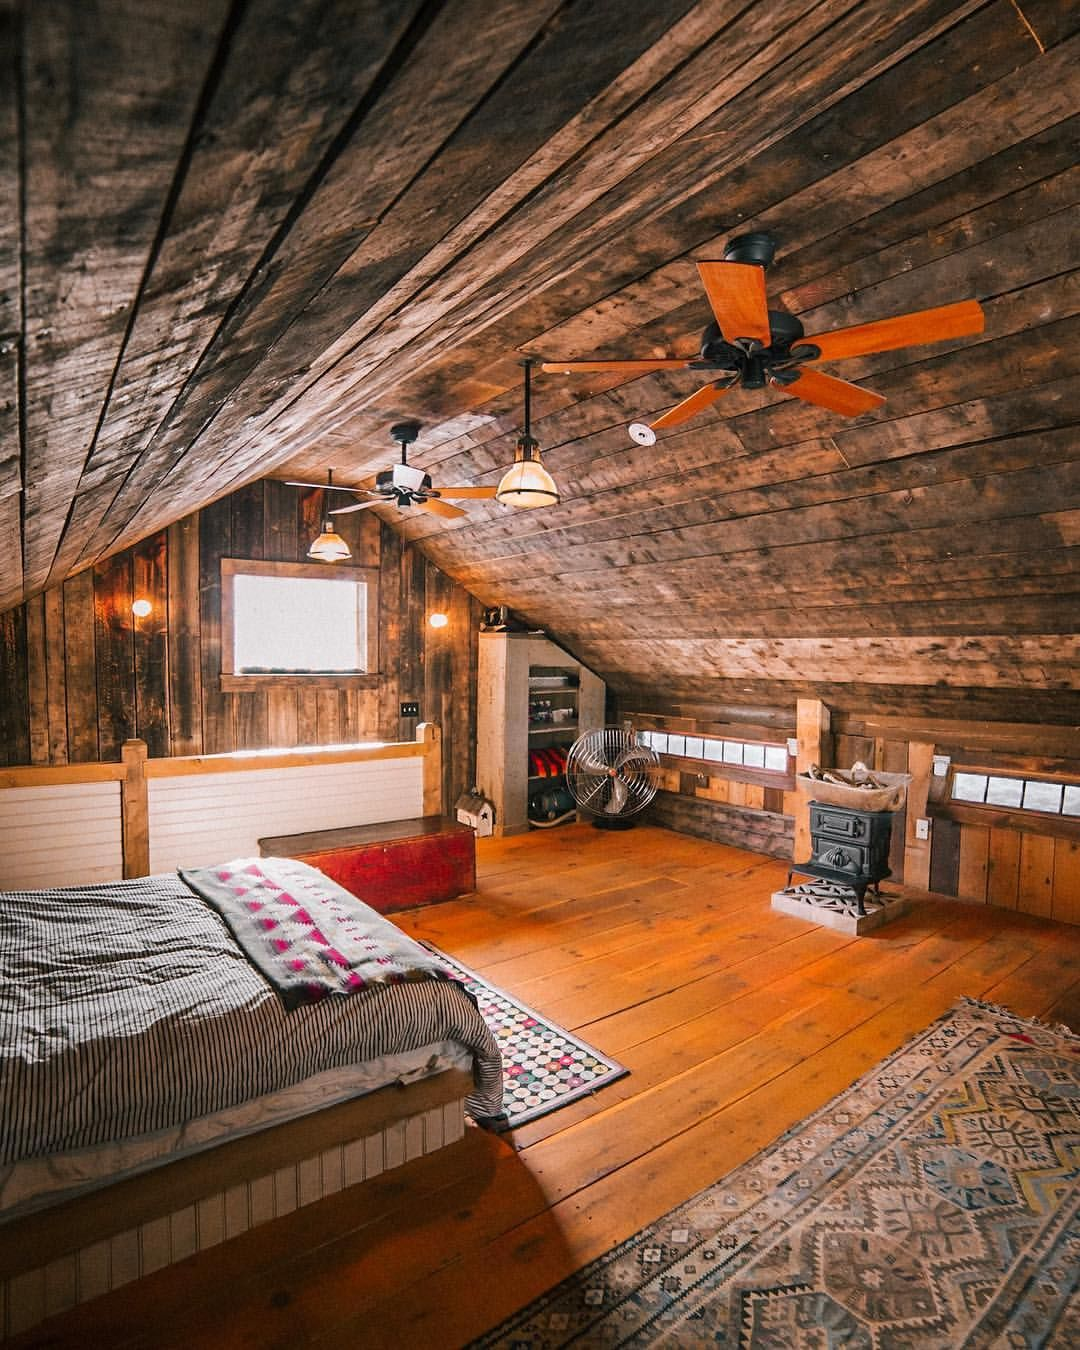 Hay is for horses, and barn lofts are for cozy cabin vibes ...